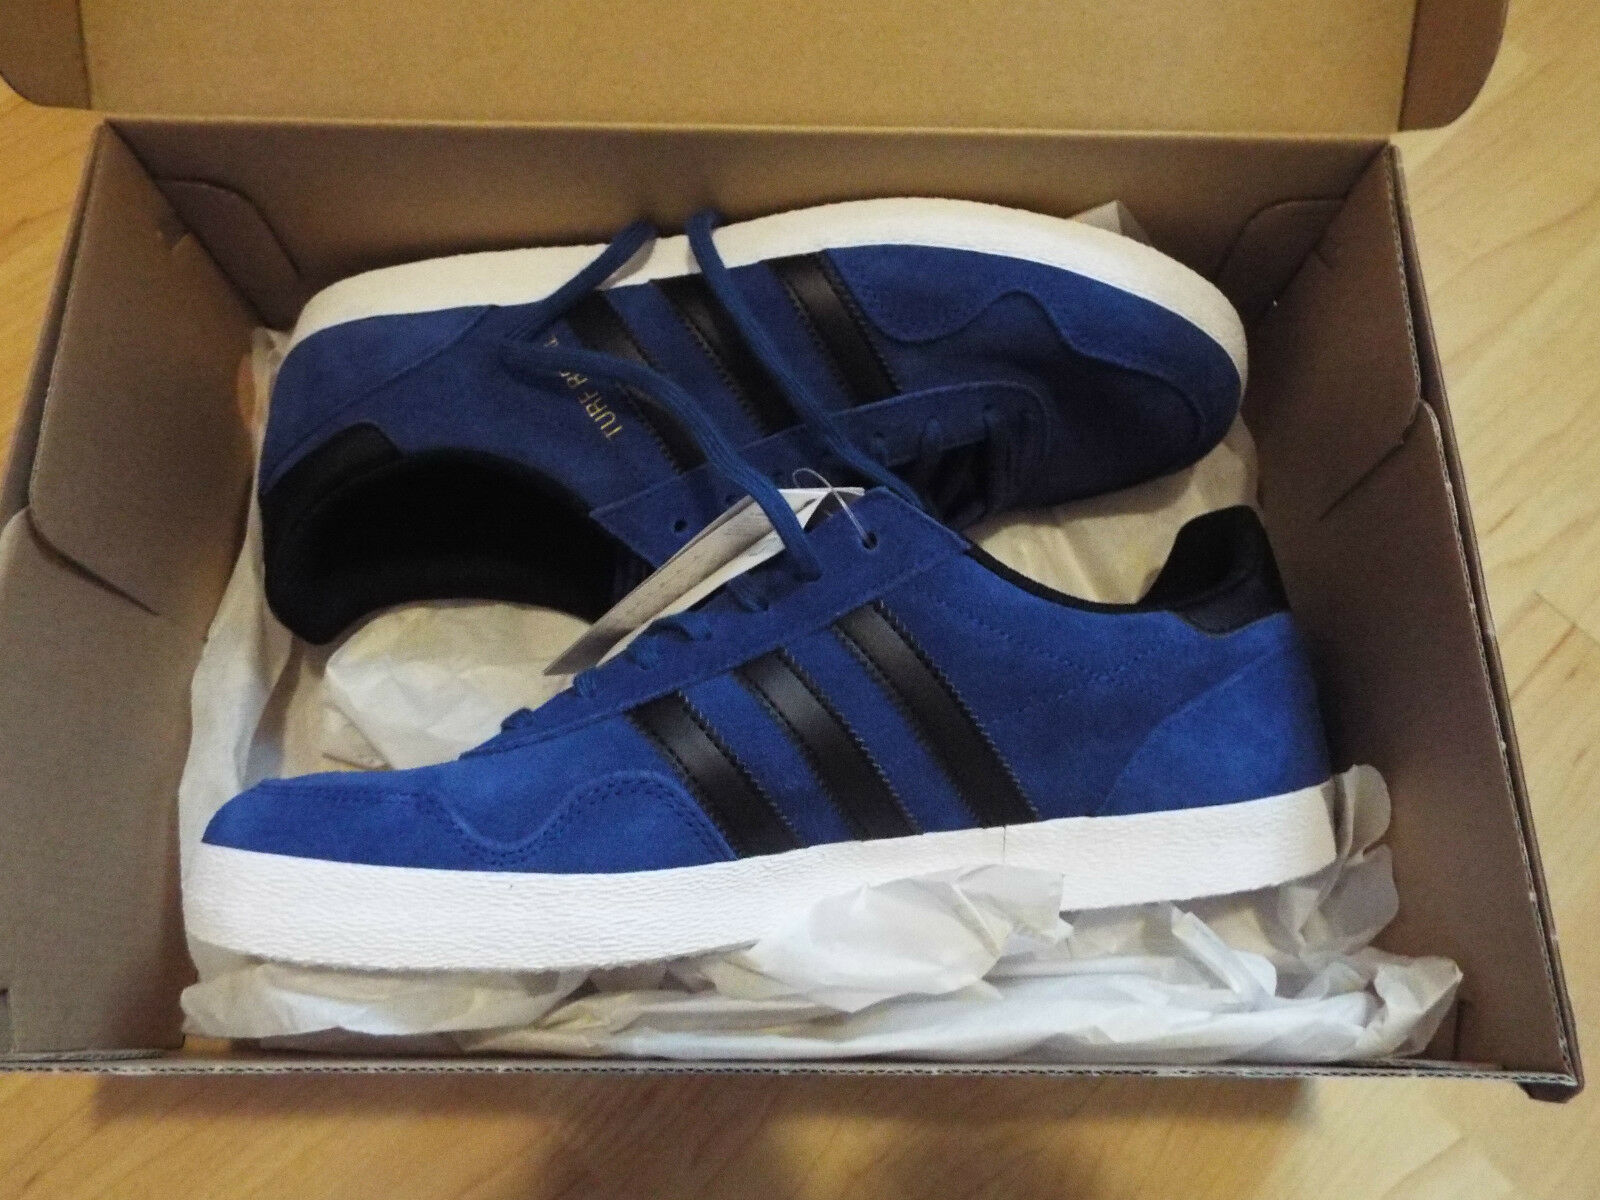 NEW & BOXED Adidas & Turf Royal in blue & Adidas black Size or 9 Europe 42 or 43.3 bbdf07